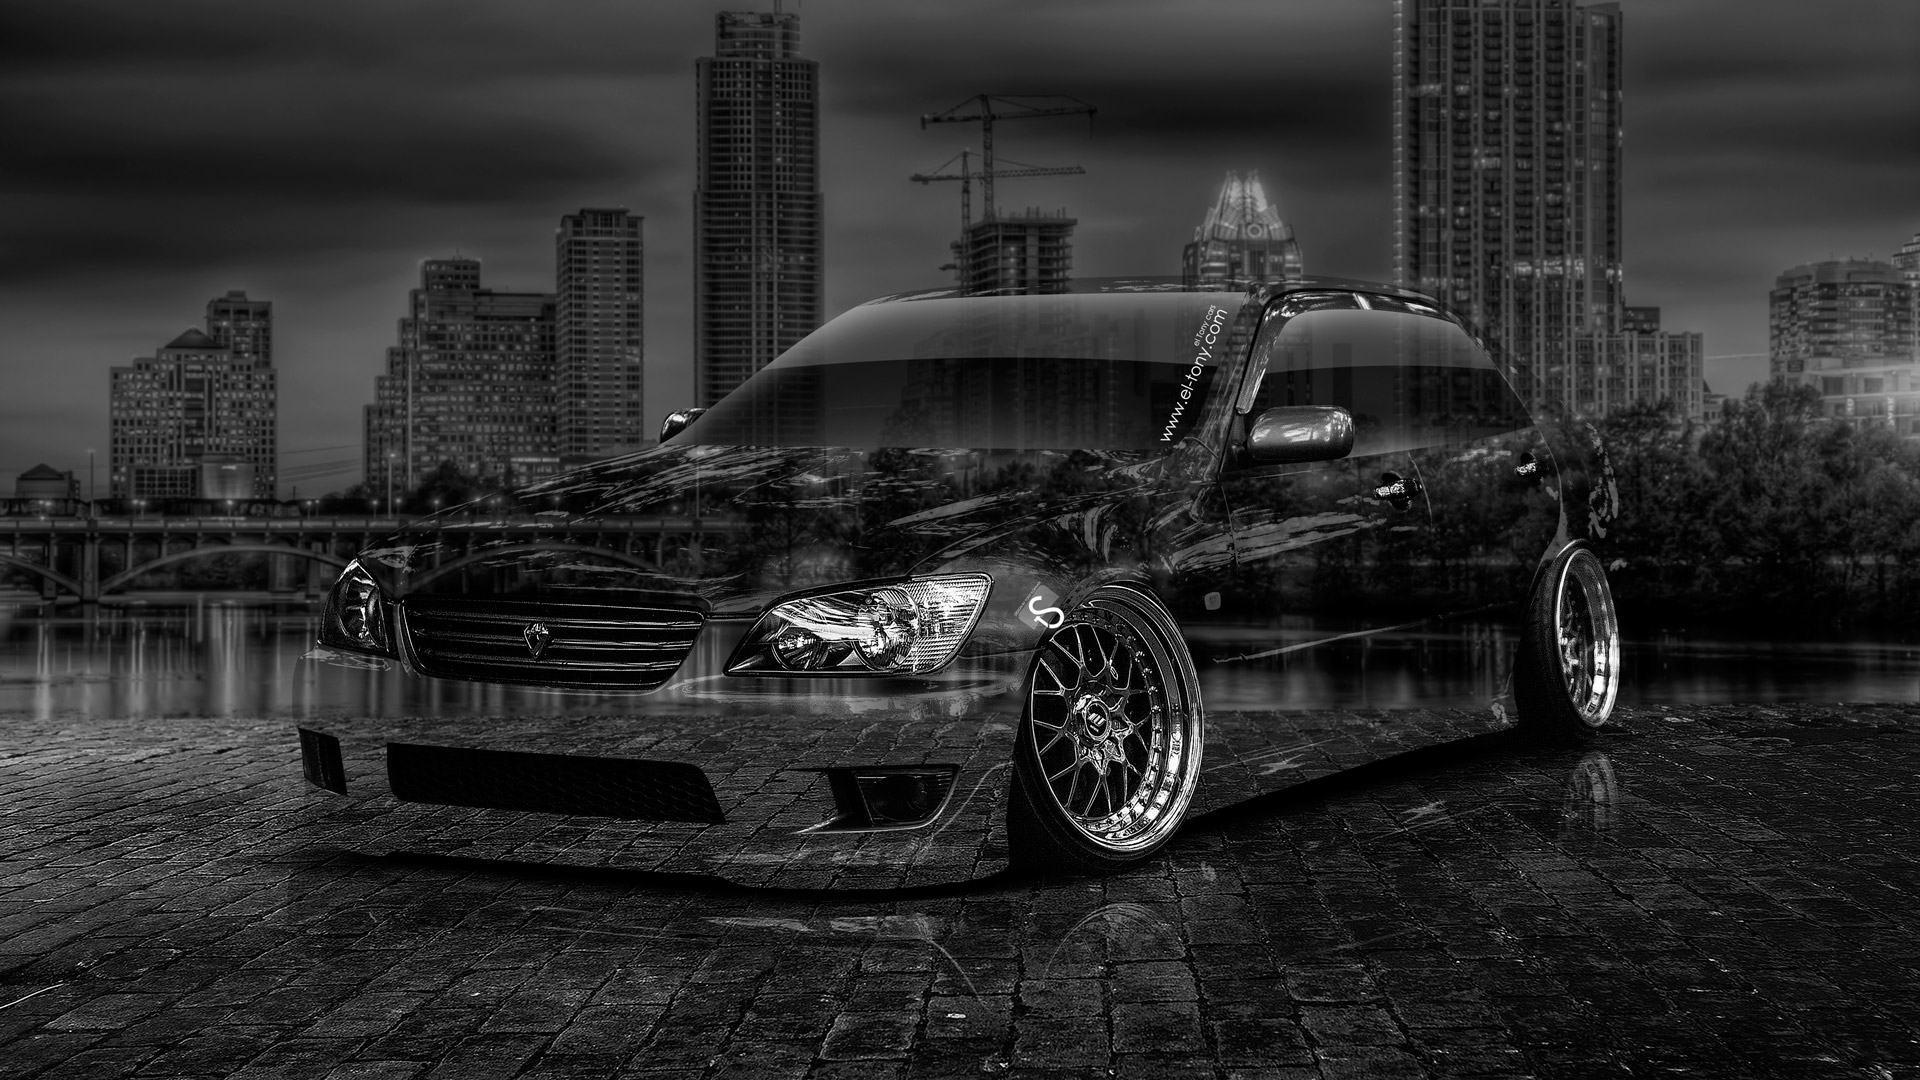 Toyota Altezza Jdm Crystal City Car Art Hd Wallpapers Design By Tony Kokhan Www El Tony Com